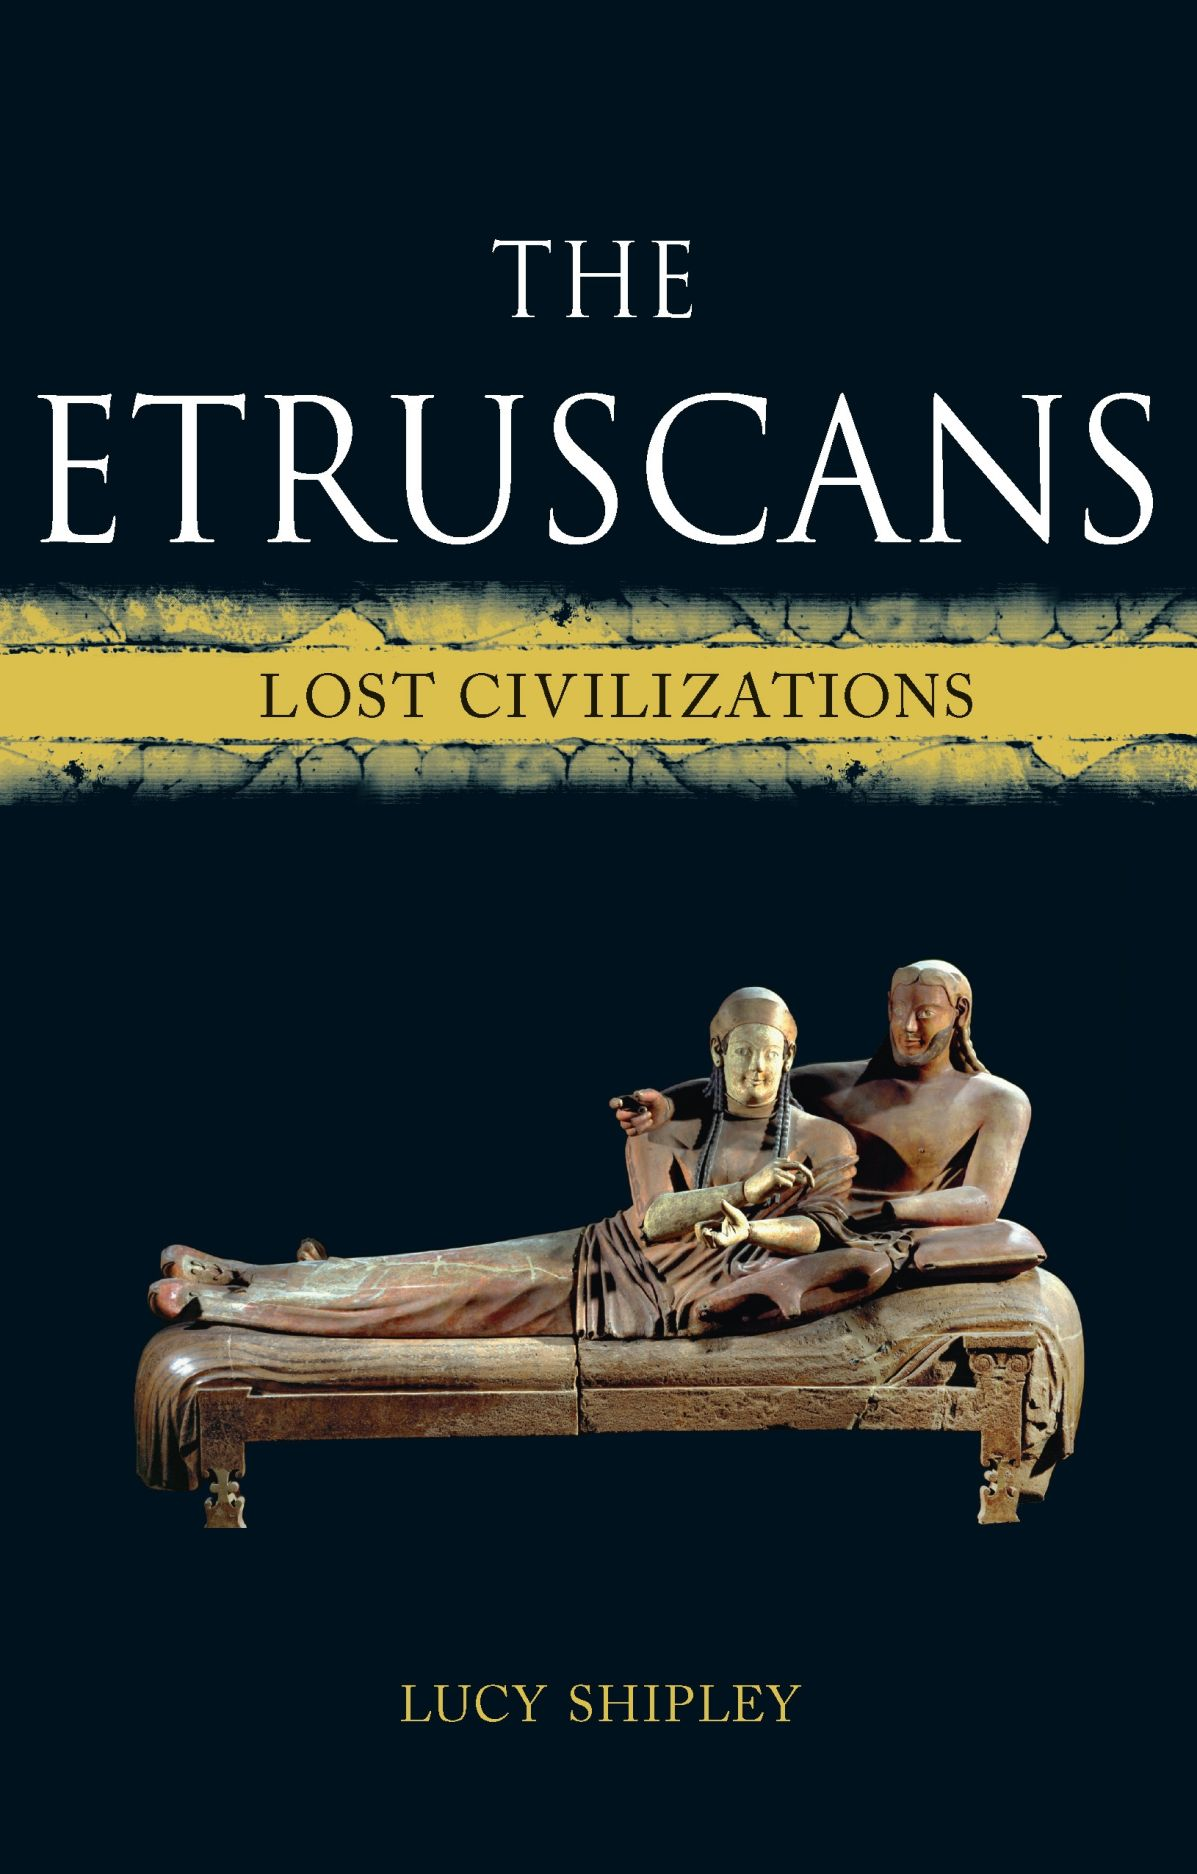 The Etruscans: Lost Civilizations